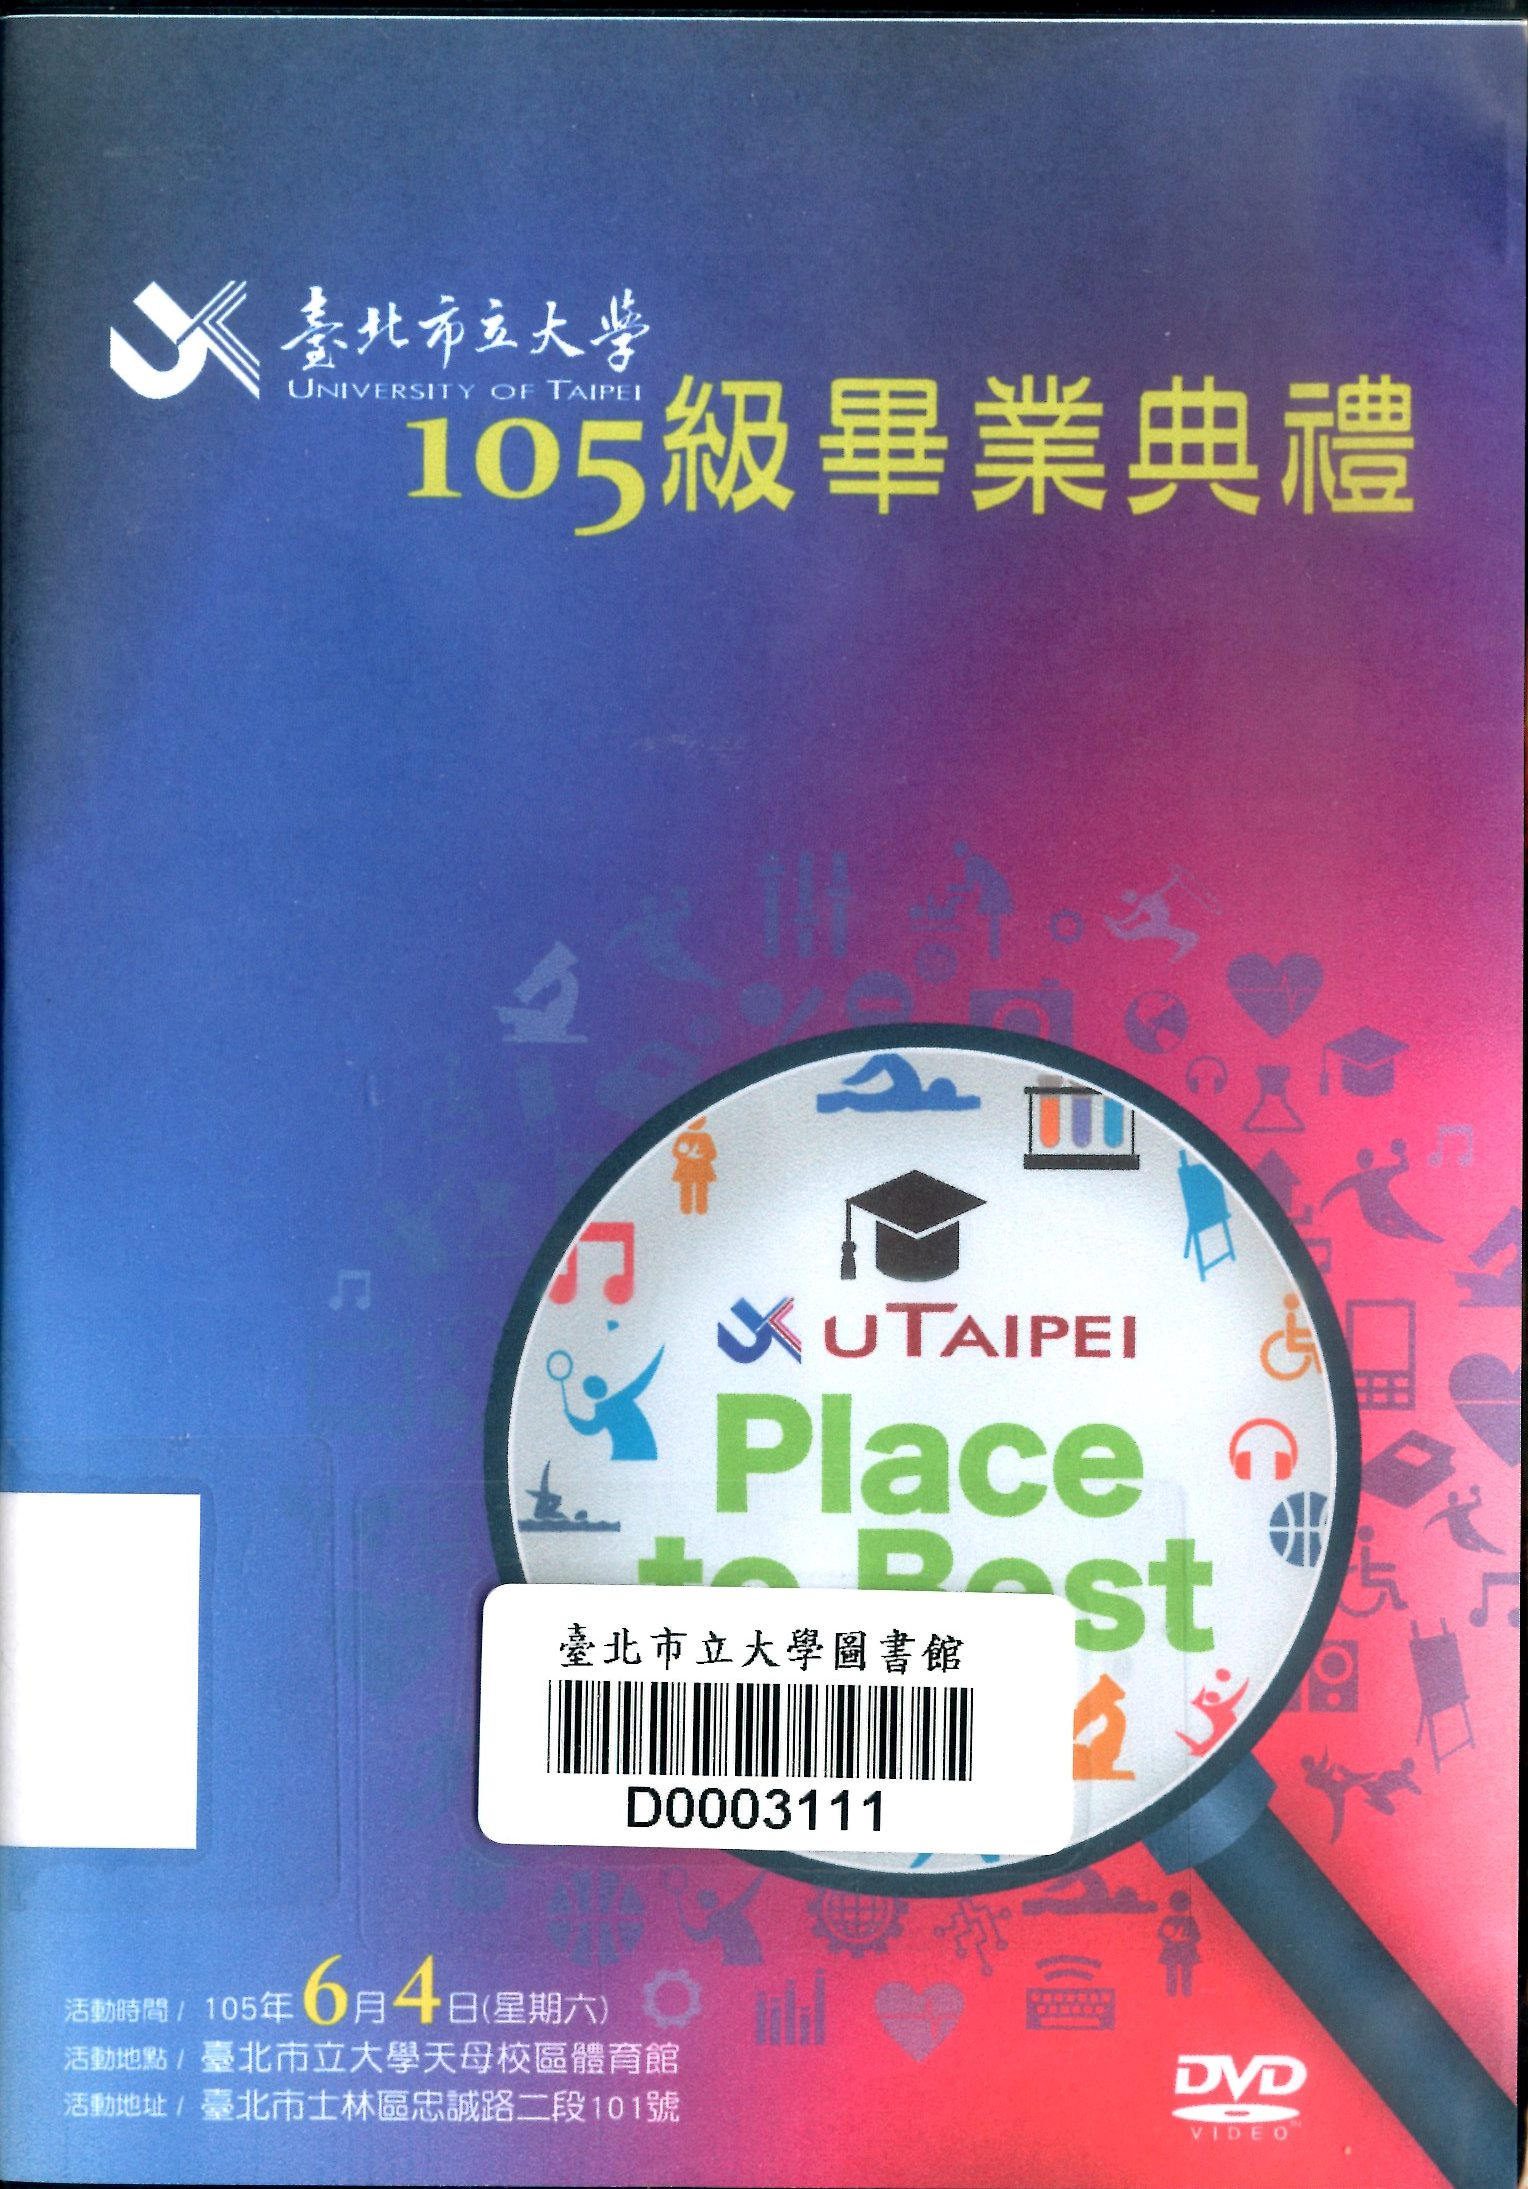 Place to Best :  臺北市立大學105級畢業典禮 /